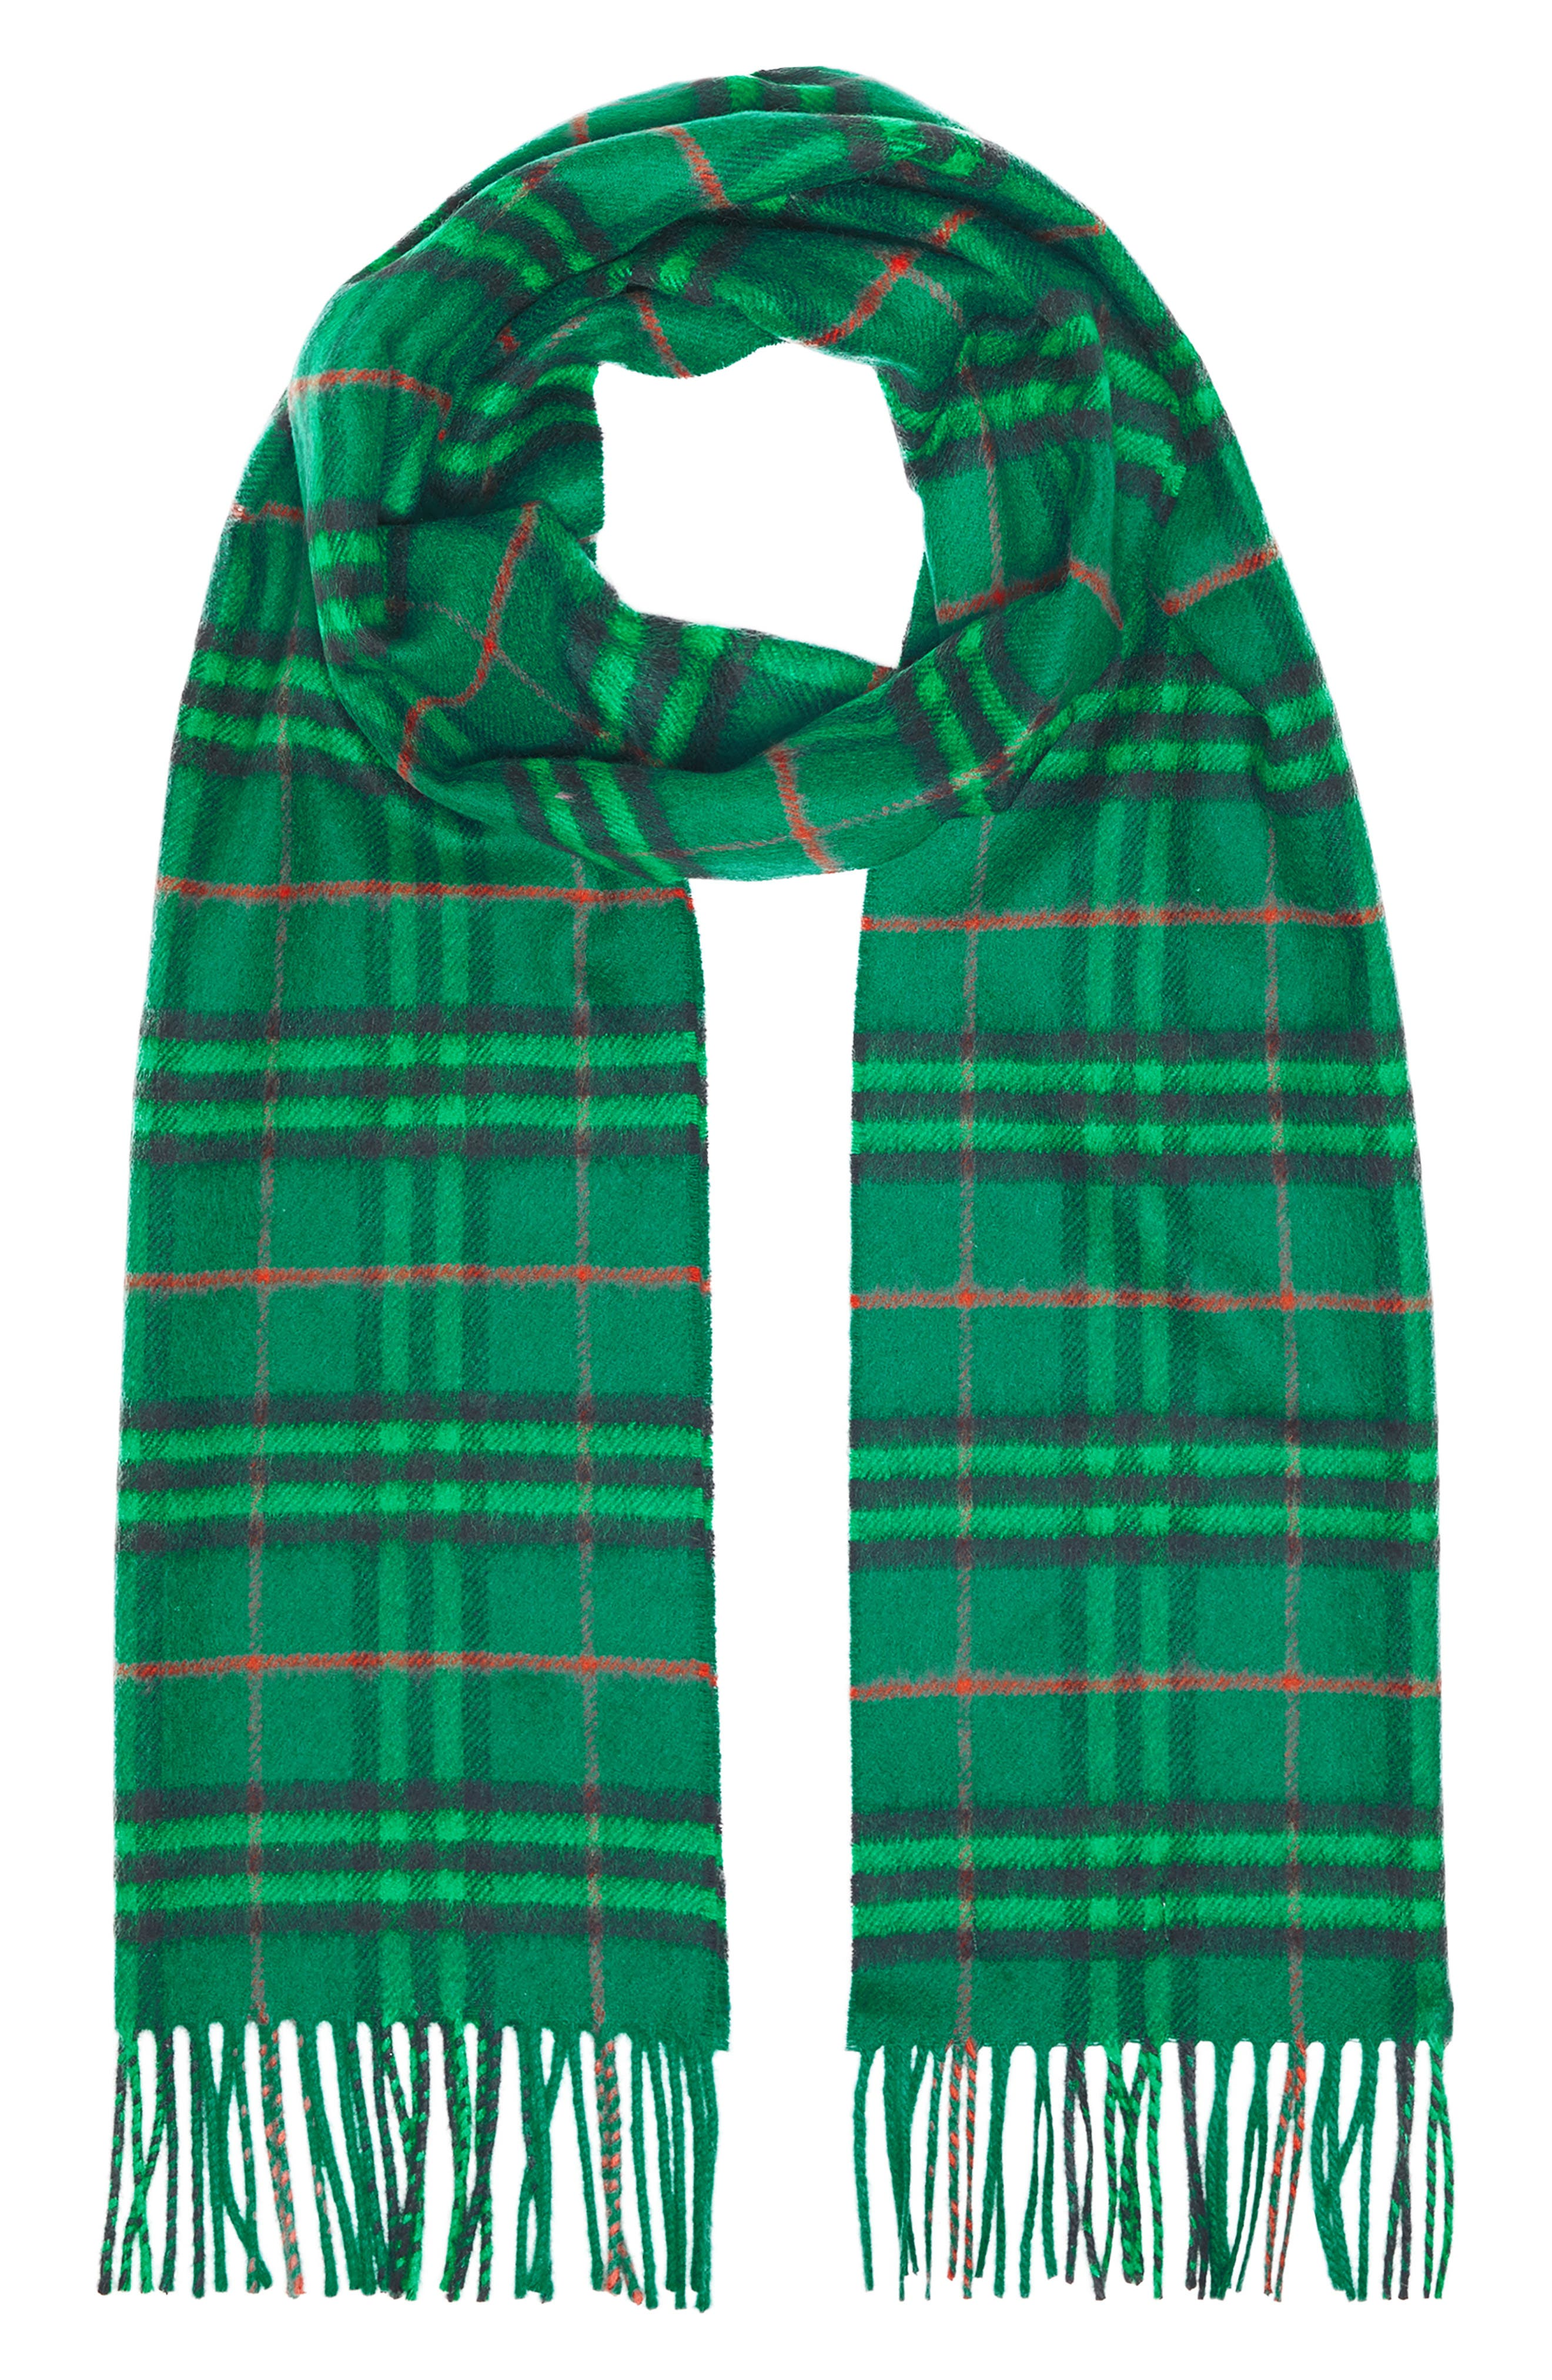 BURBERRY,                             Vintage Check Cashmere Scarf,                             Alternate thumbnail 2, color,                             VIRIDIAN GREEN